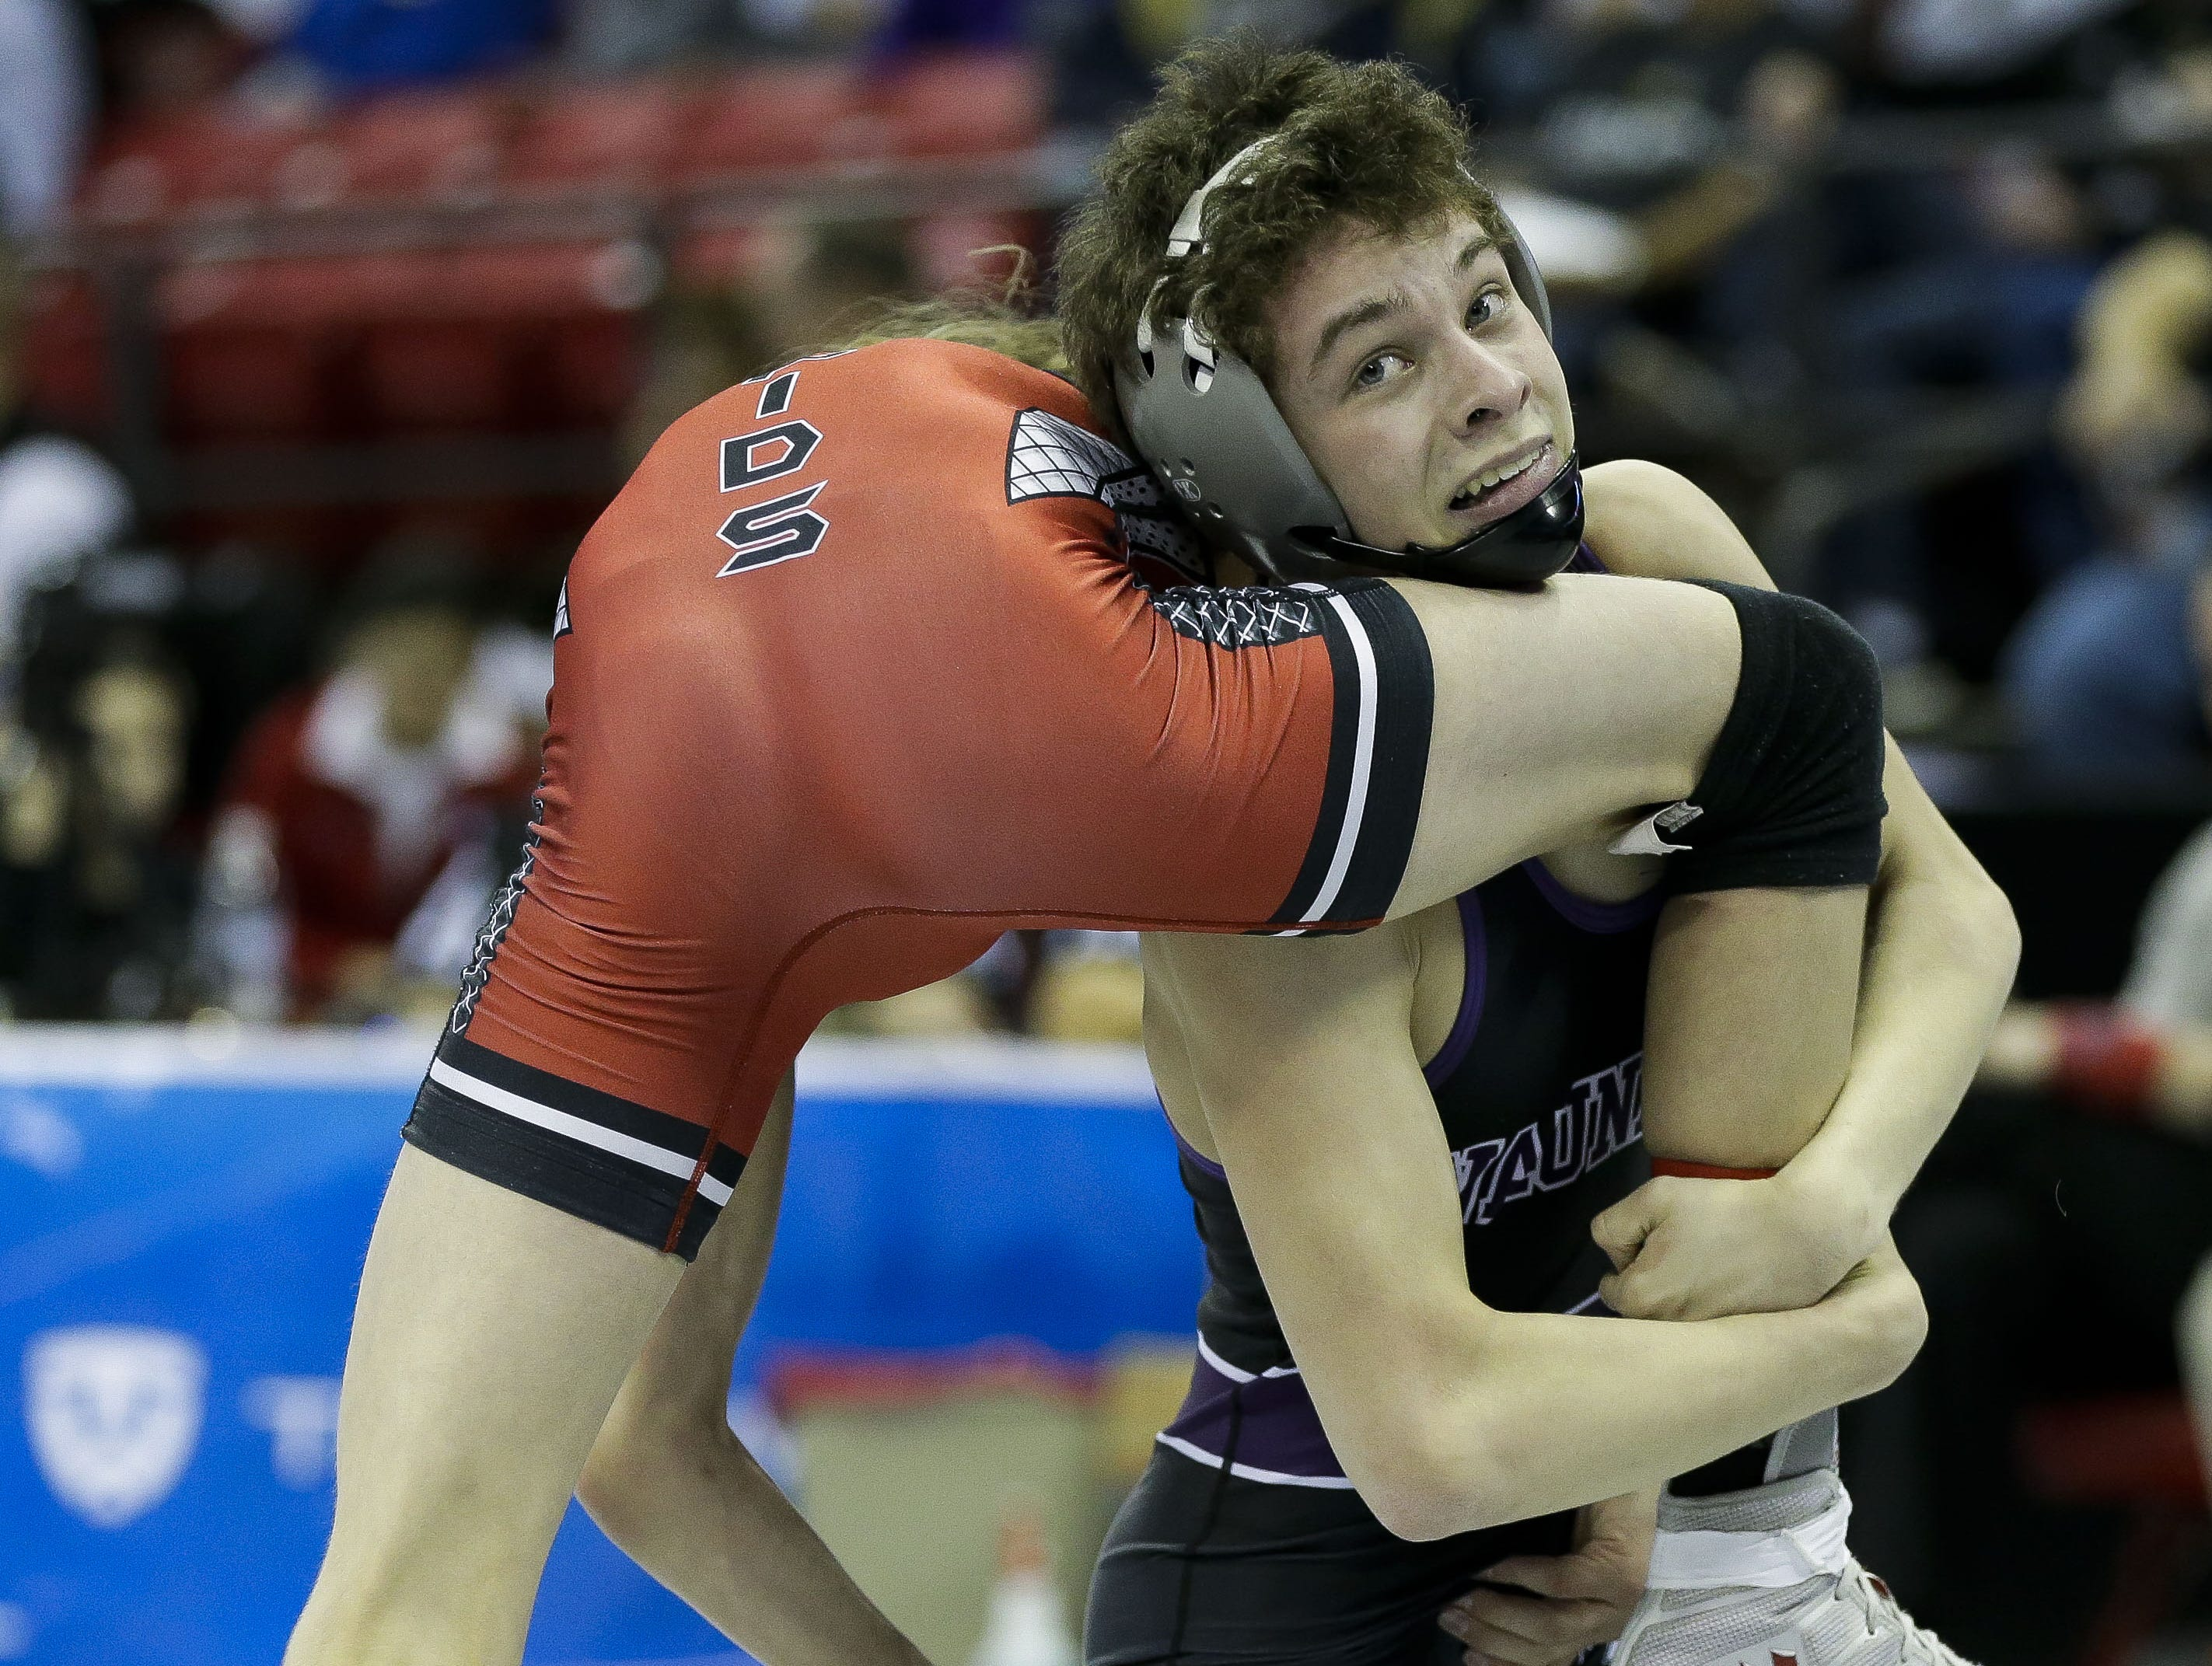 Waunakee's Kolby Heinz wrestles against Wisconsin Rapids' Preston Spray in a Division 1 106-pound preliminary match during the WIAA state wrestling tournament on Thursday, February 21, 2019, at the Kohl Center in Madison, Wis. Tork Mason/USA TODAY NETWORK-Wisconsin